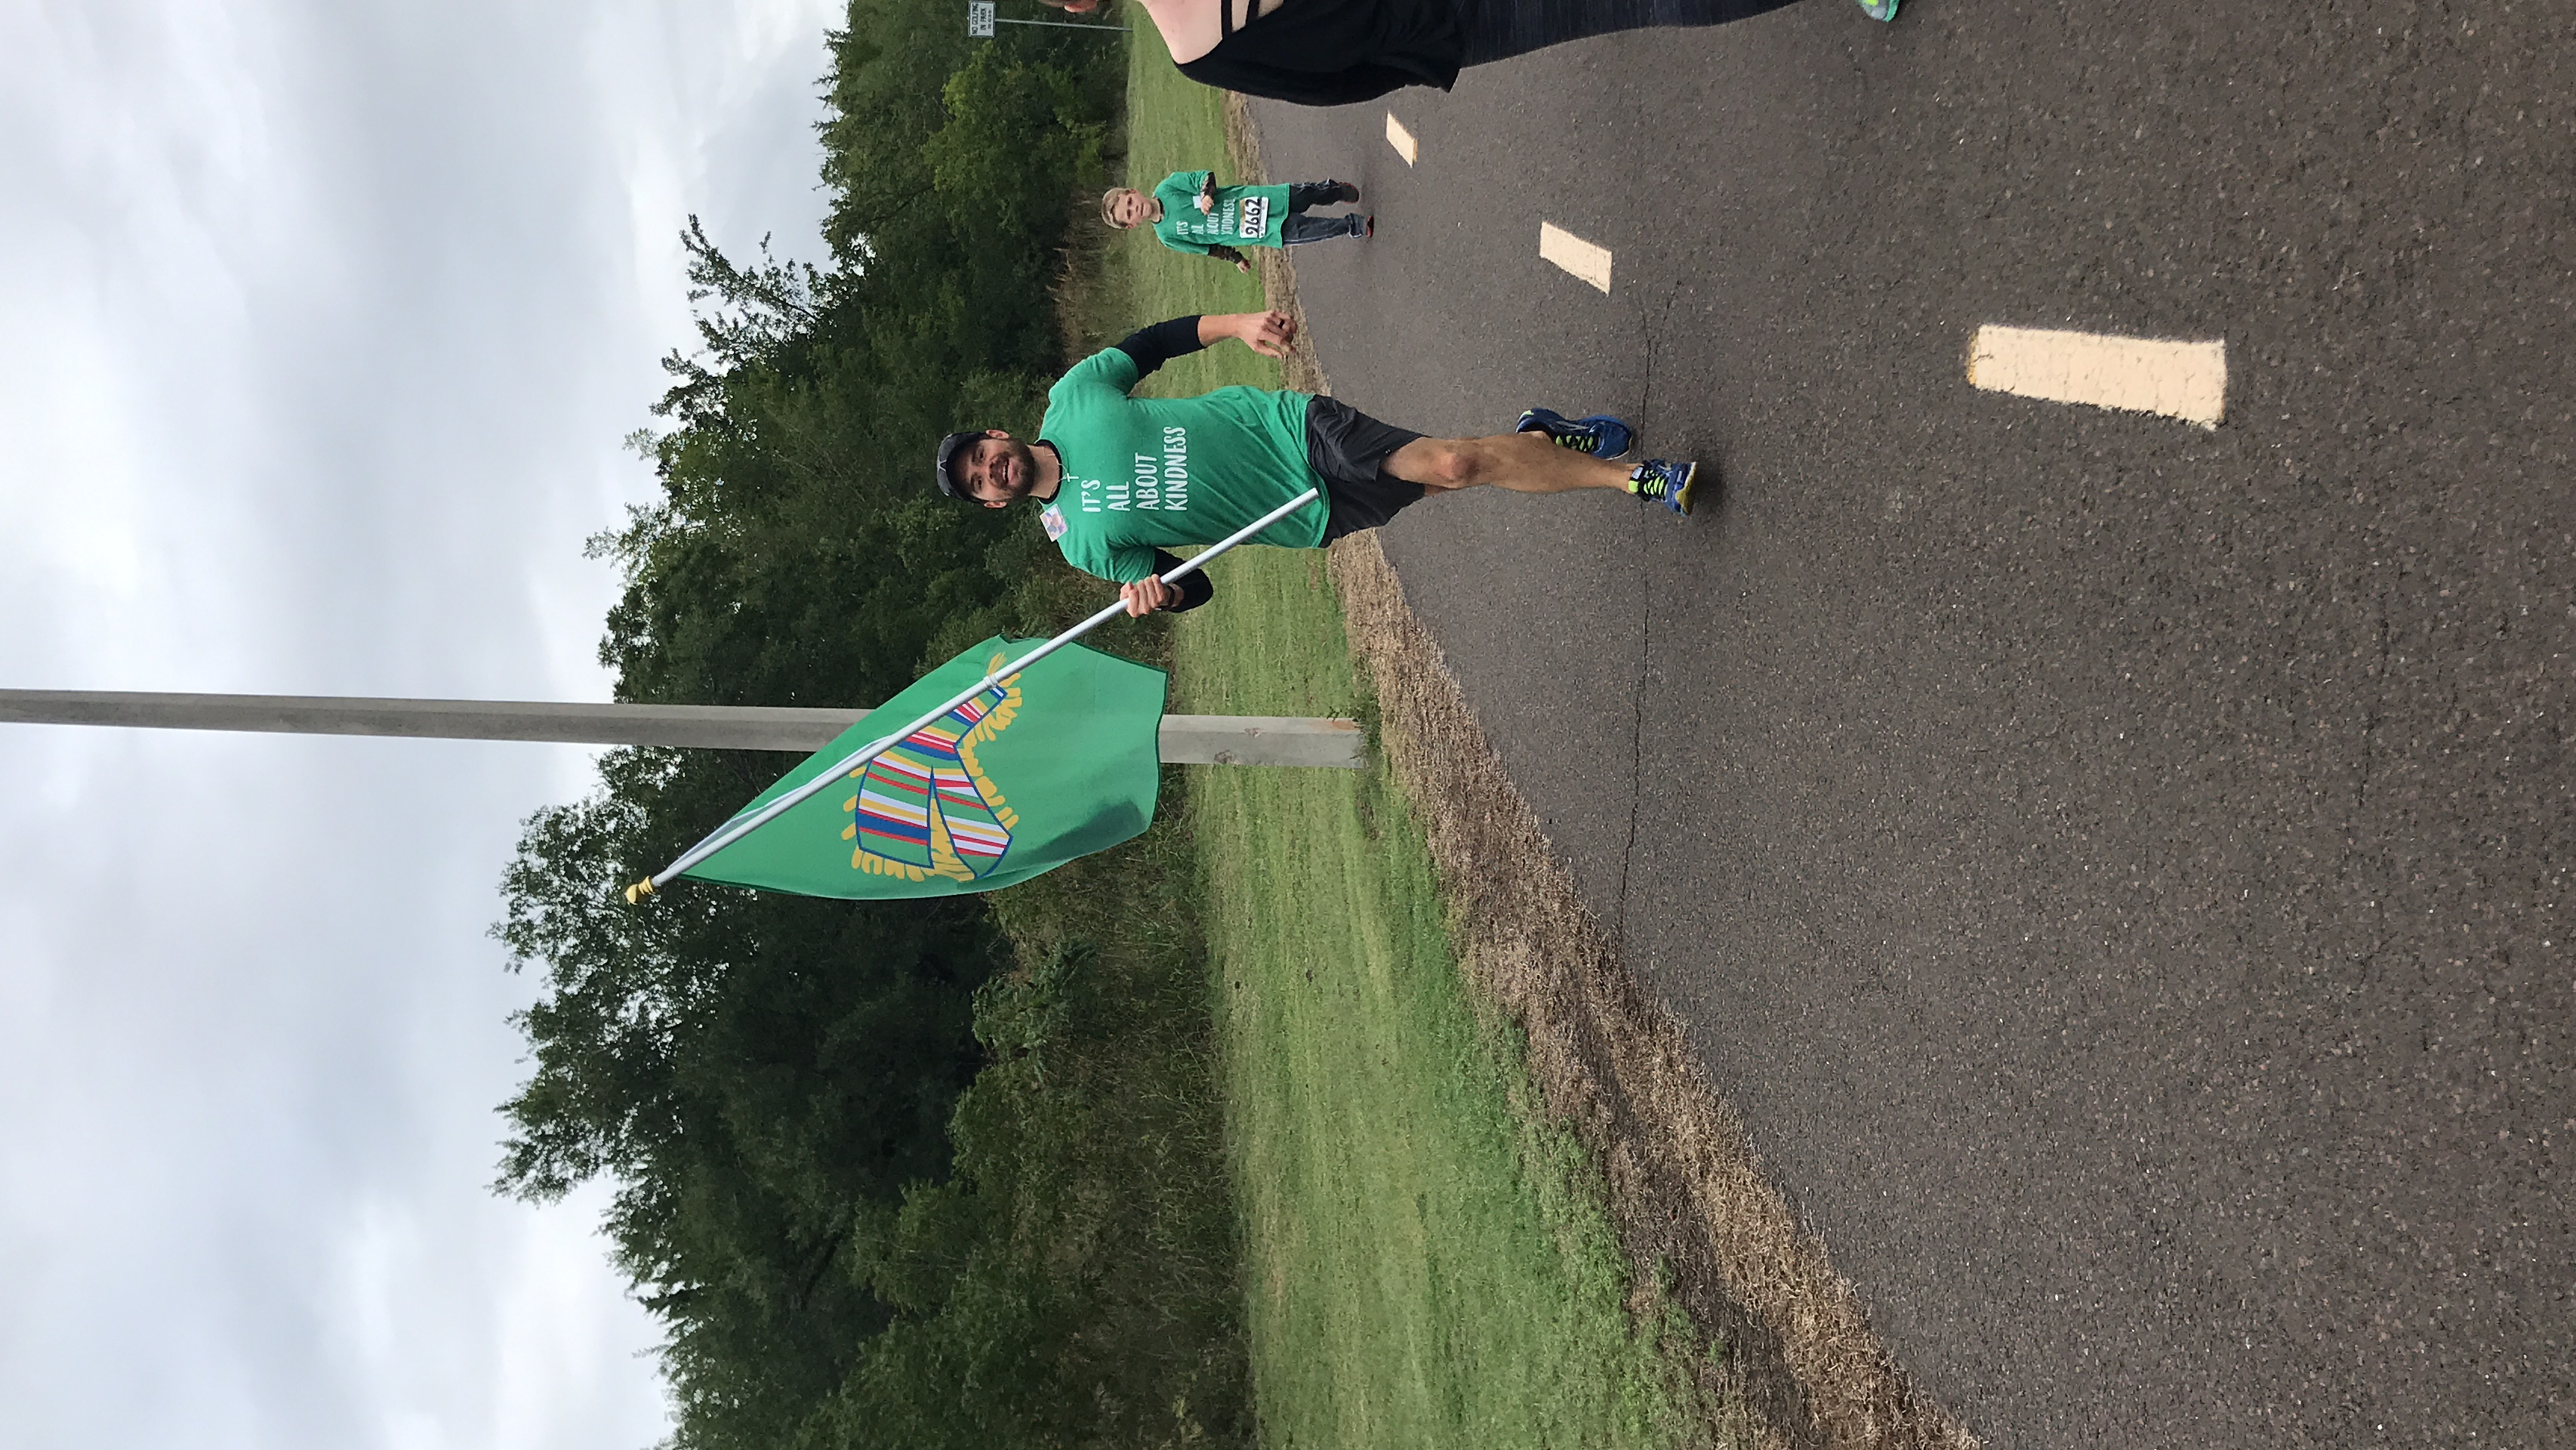 Tim running with the flag